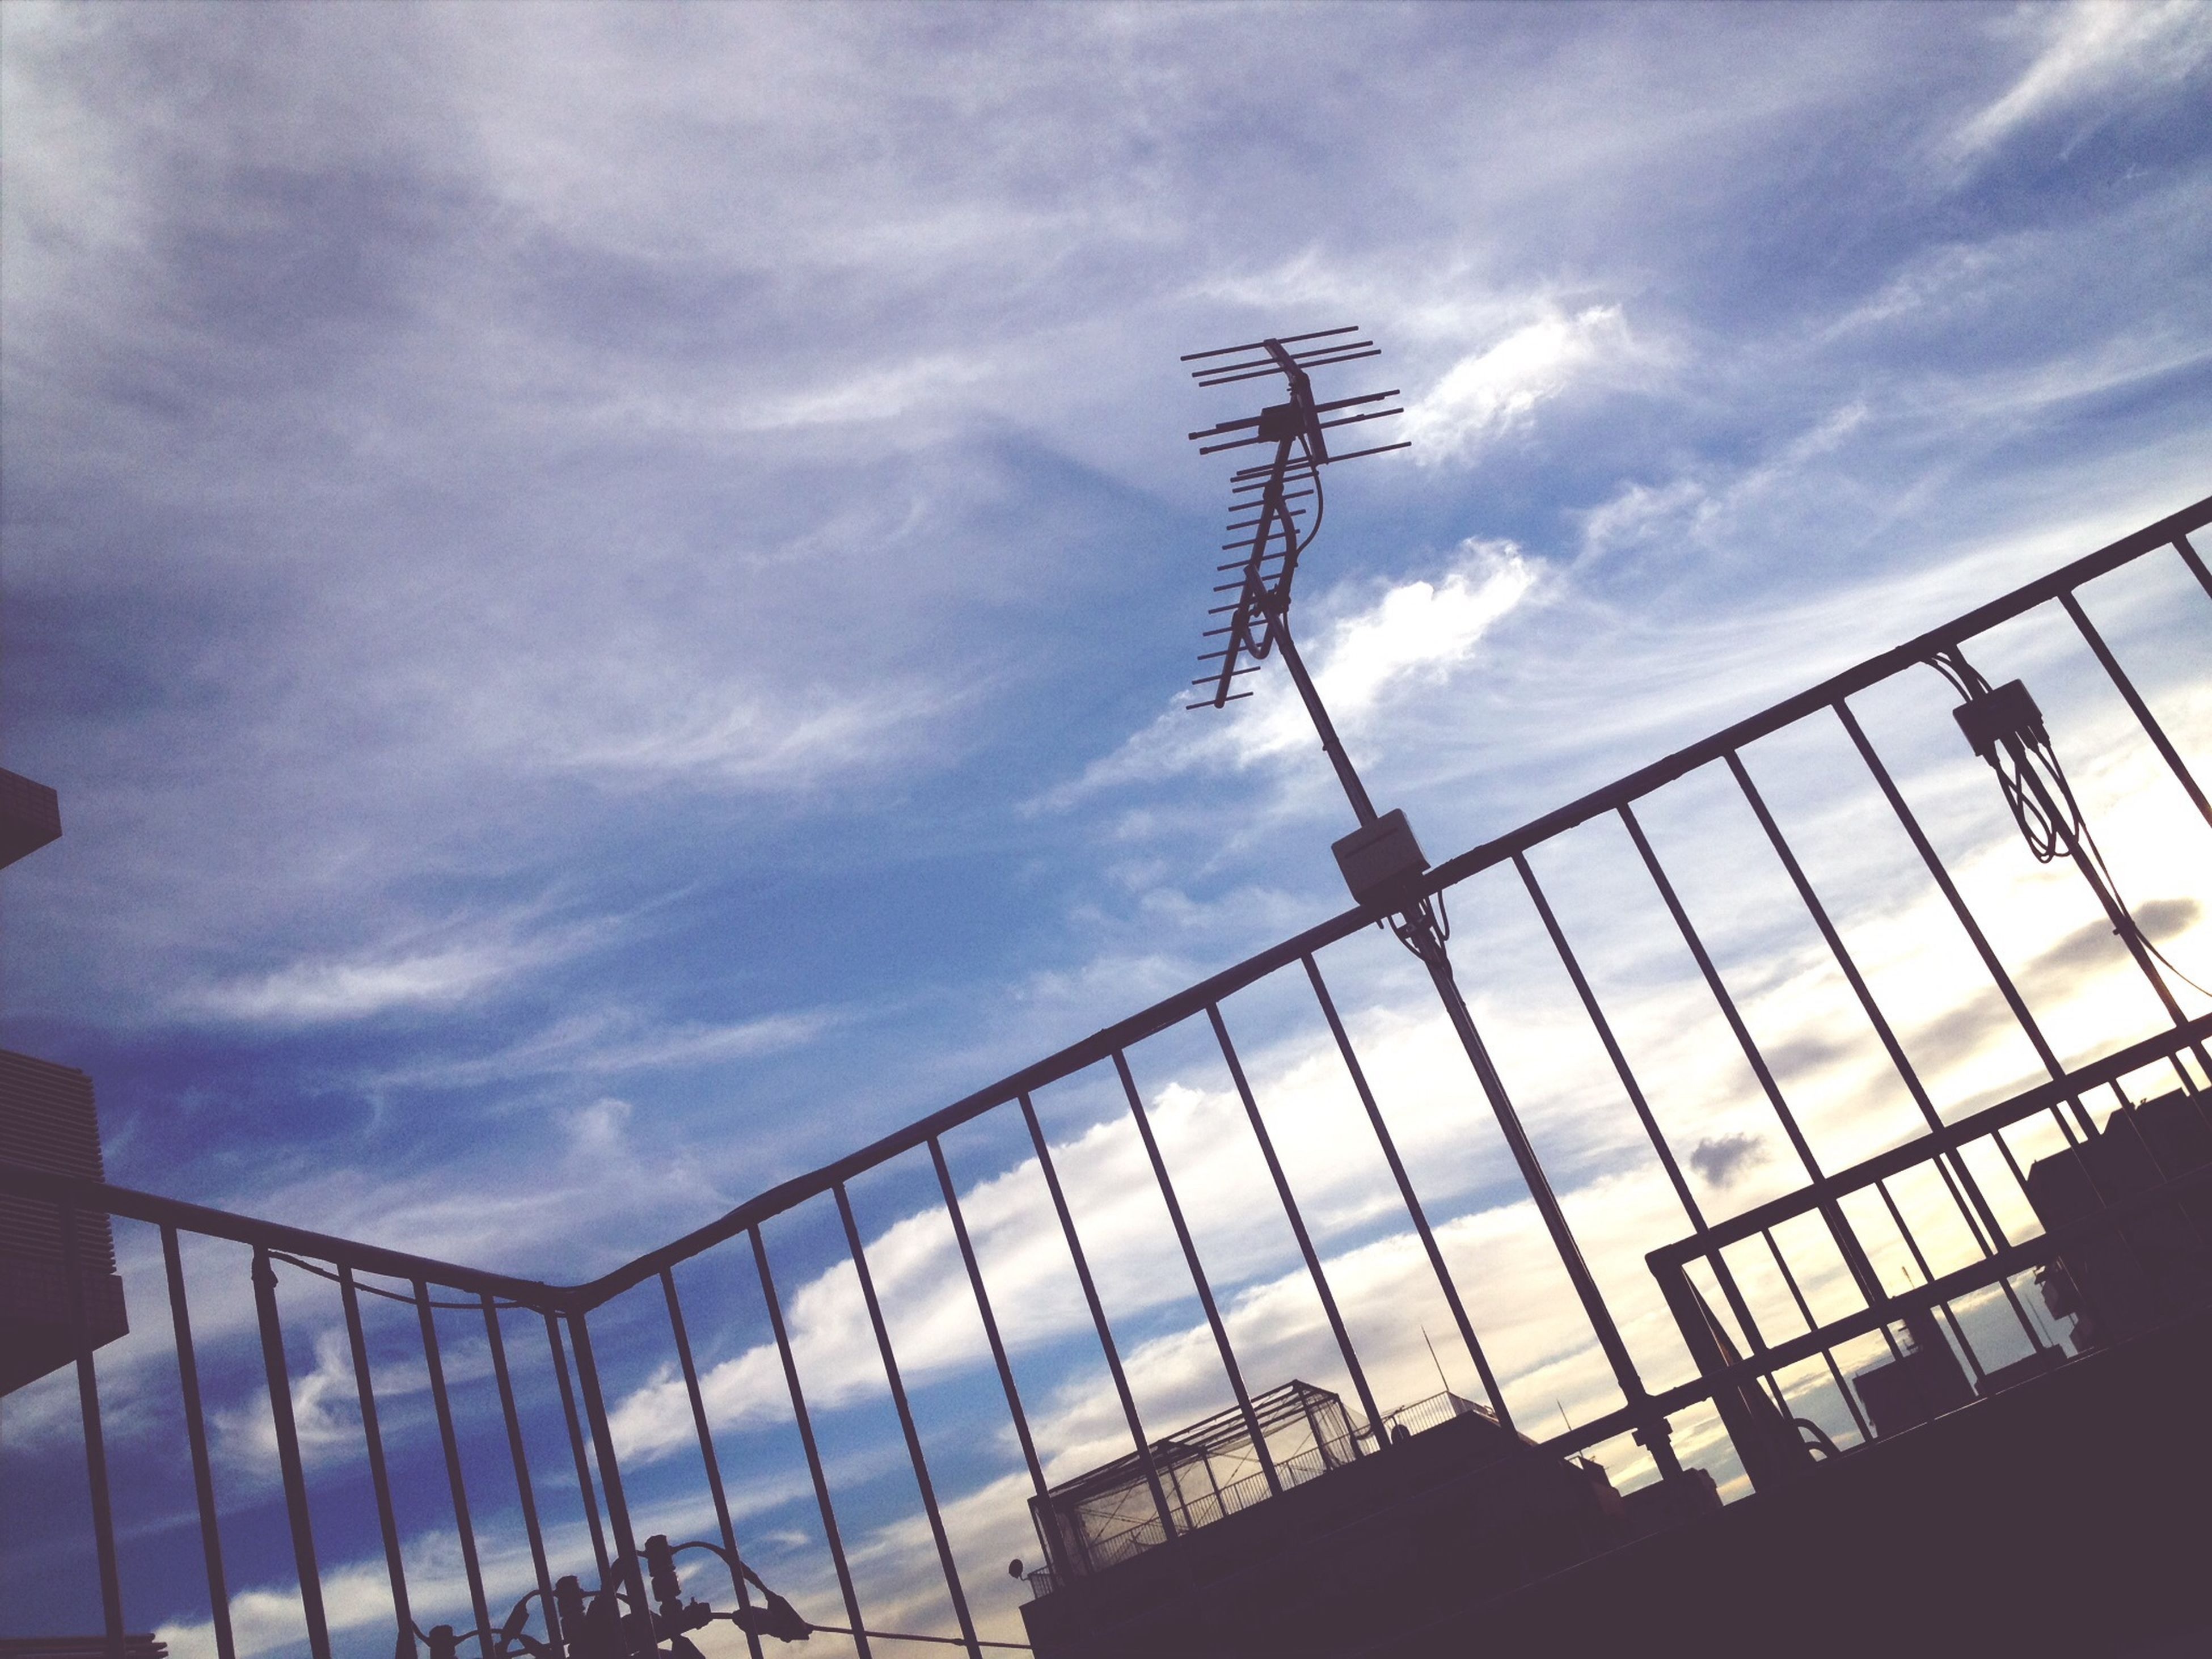 sky, cloud - sky, low angle view, cloudy, built structure, cloud, power line, cable, architecture, connection, day, fence, electricity, weather, outdoors, power supply, electricity pylon, no people, nature, railing